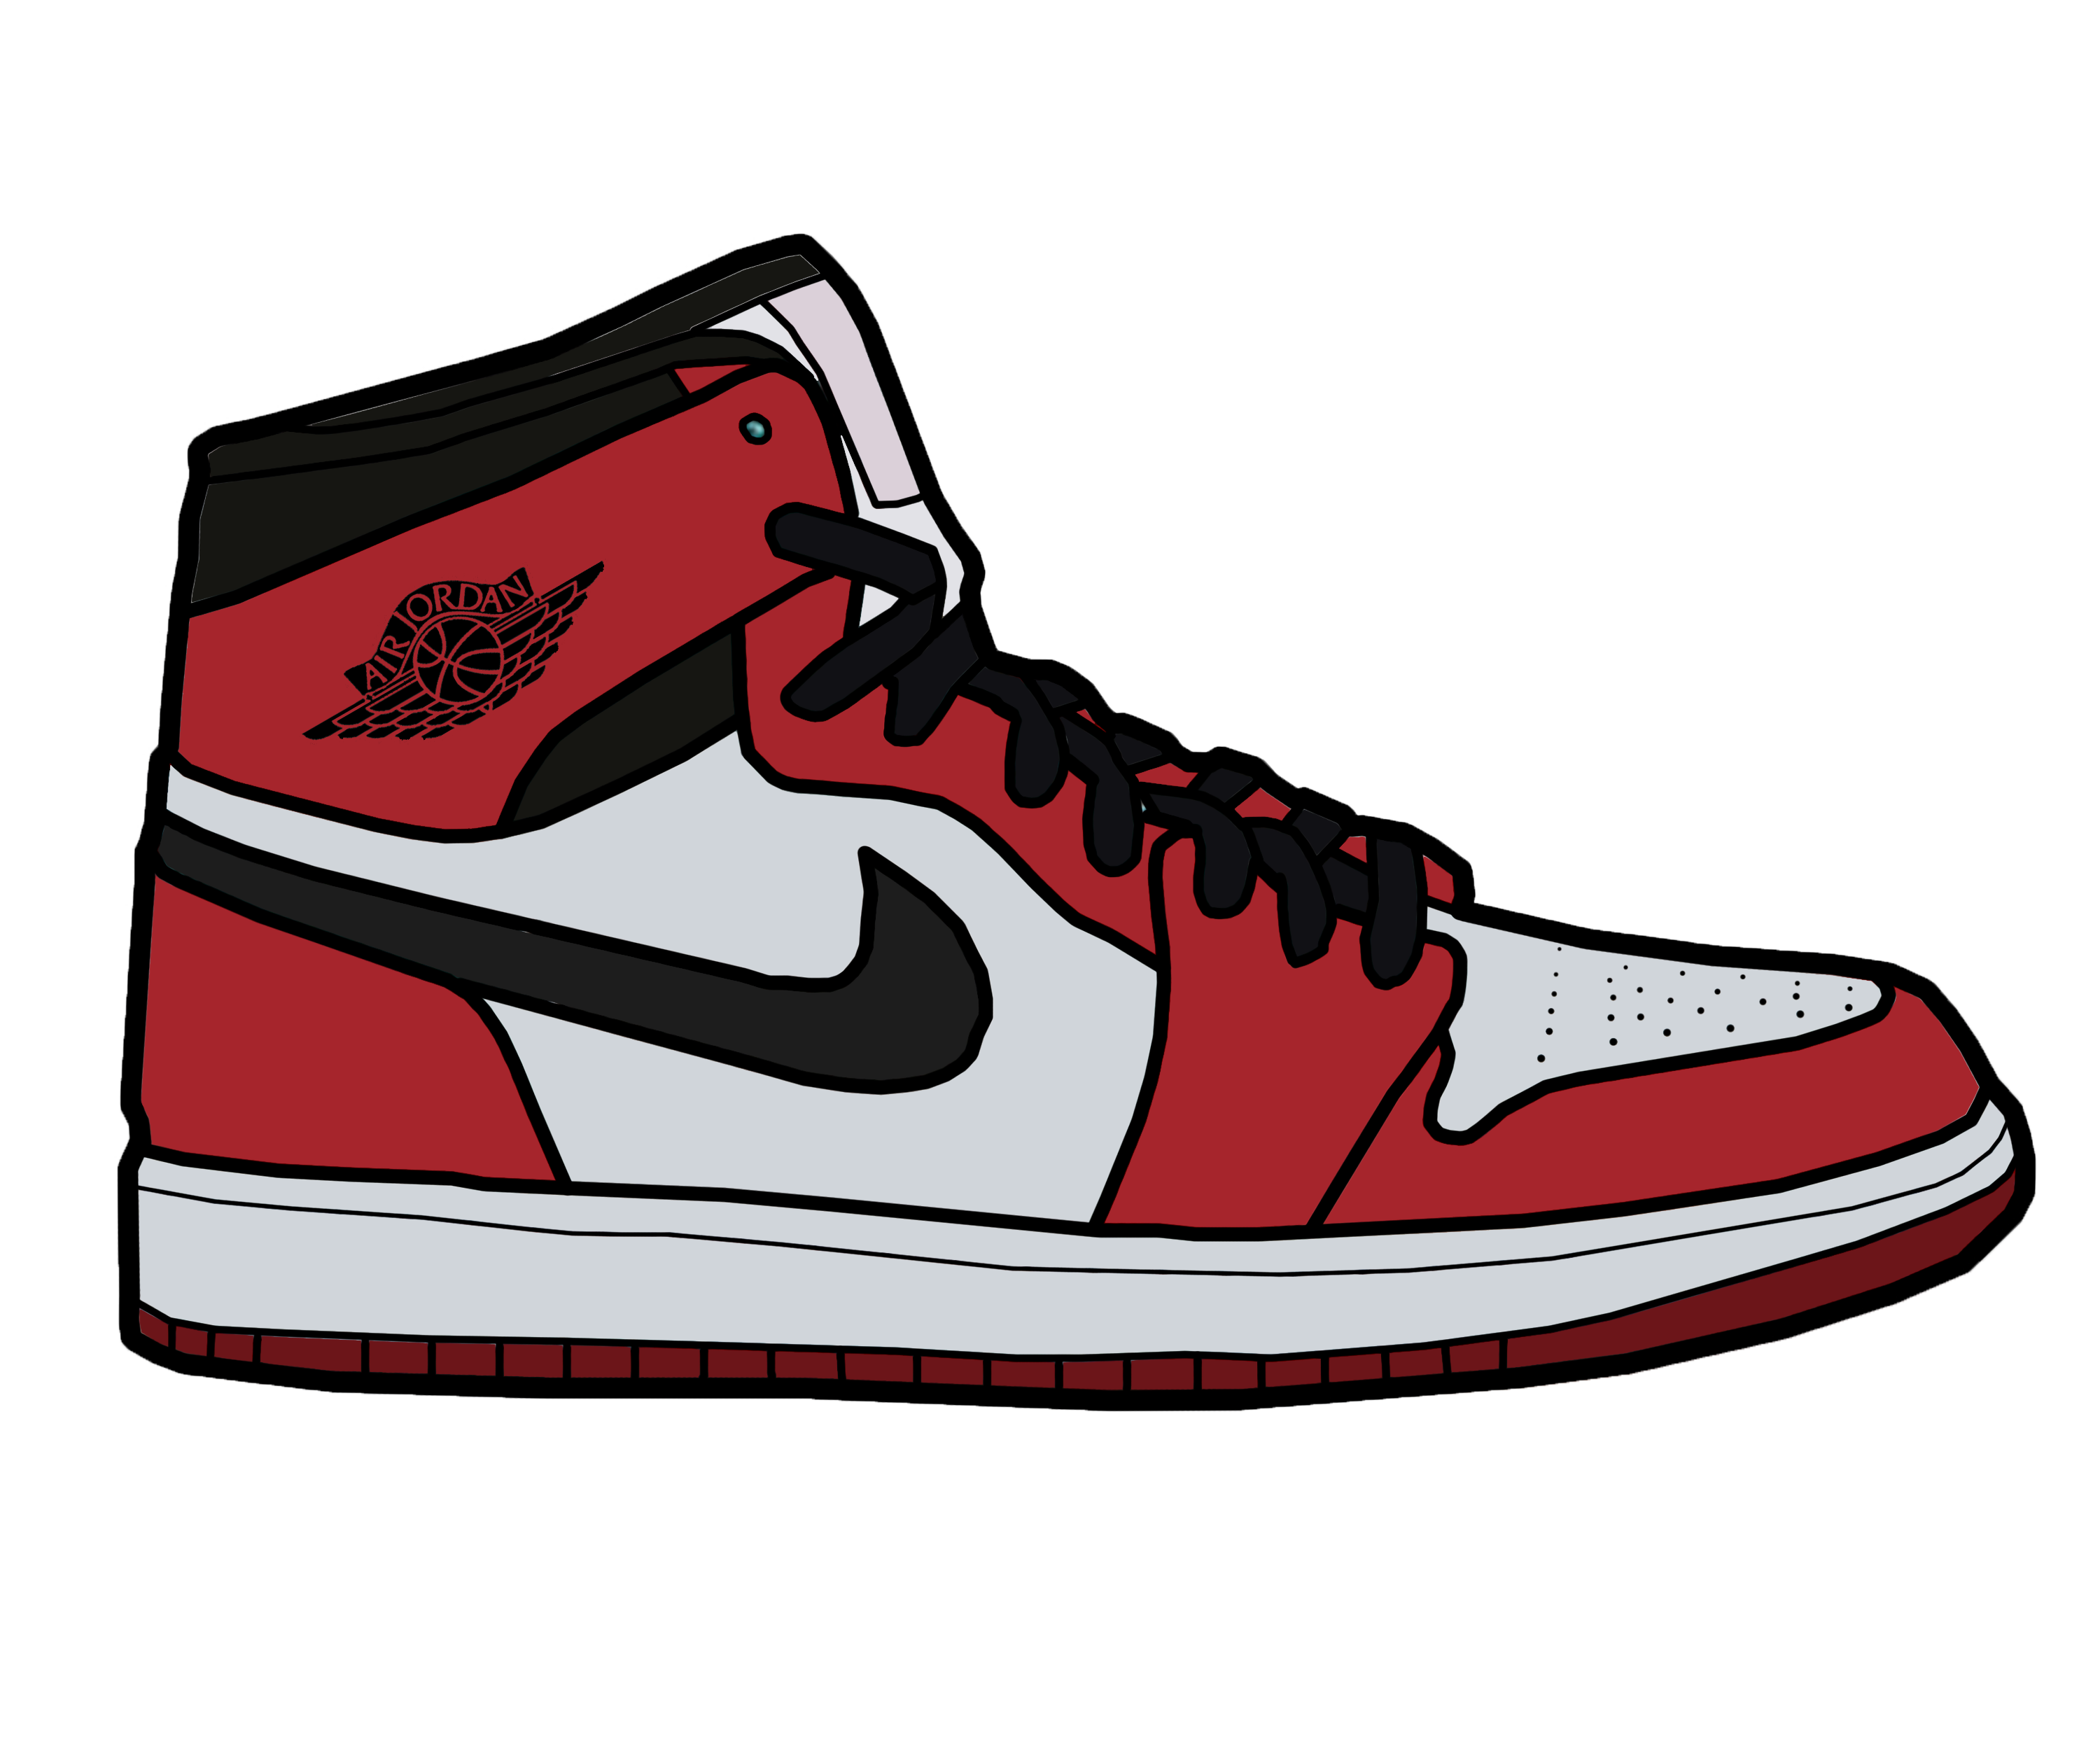 drawings of jordans 1 retro